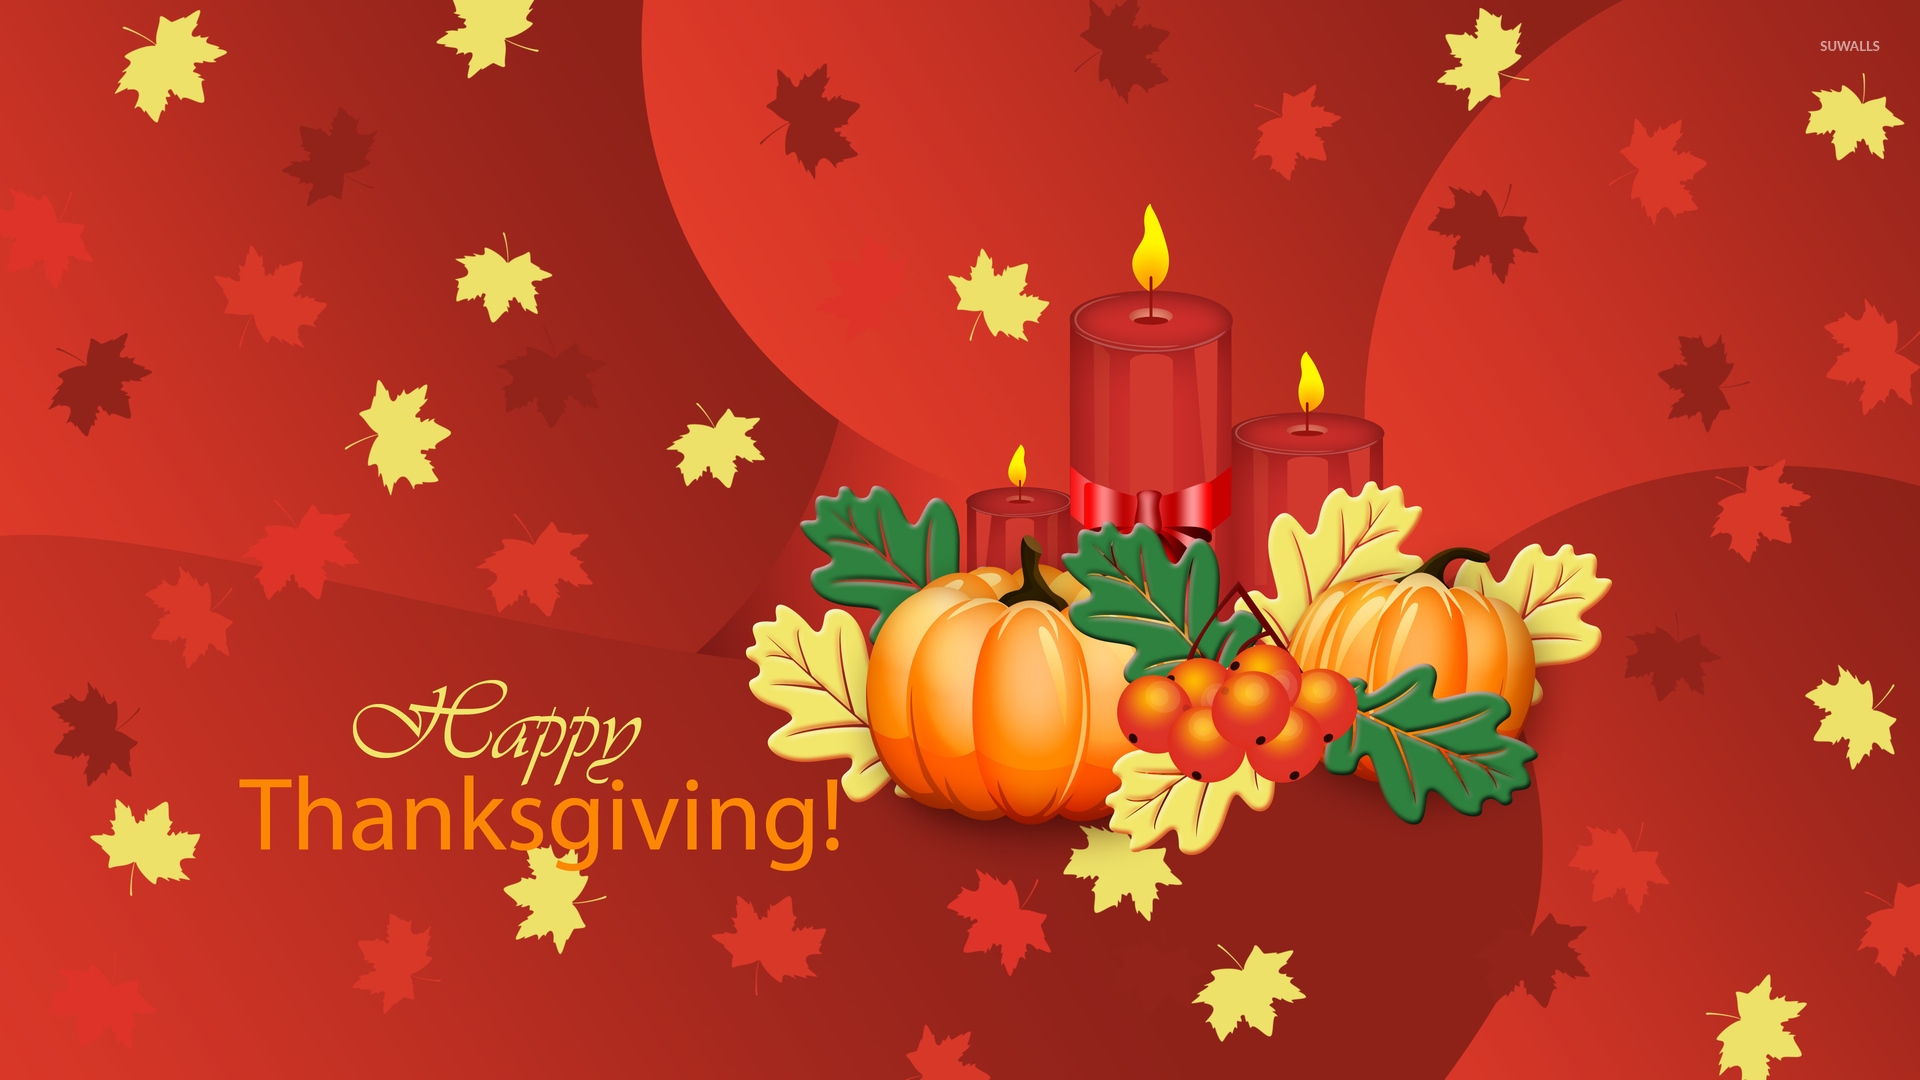 1920x1080 thanksgiving wallpaper: Thanksgiving Wallpaper 1920x1080